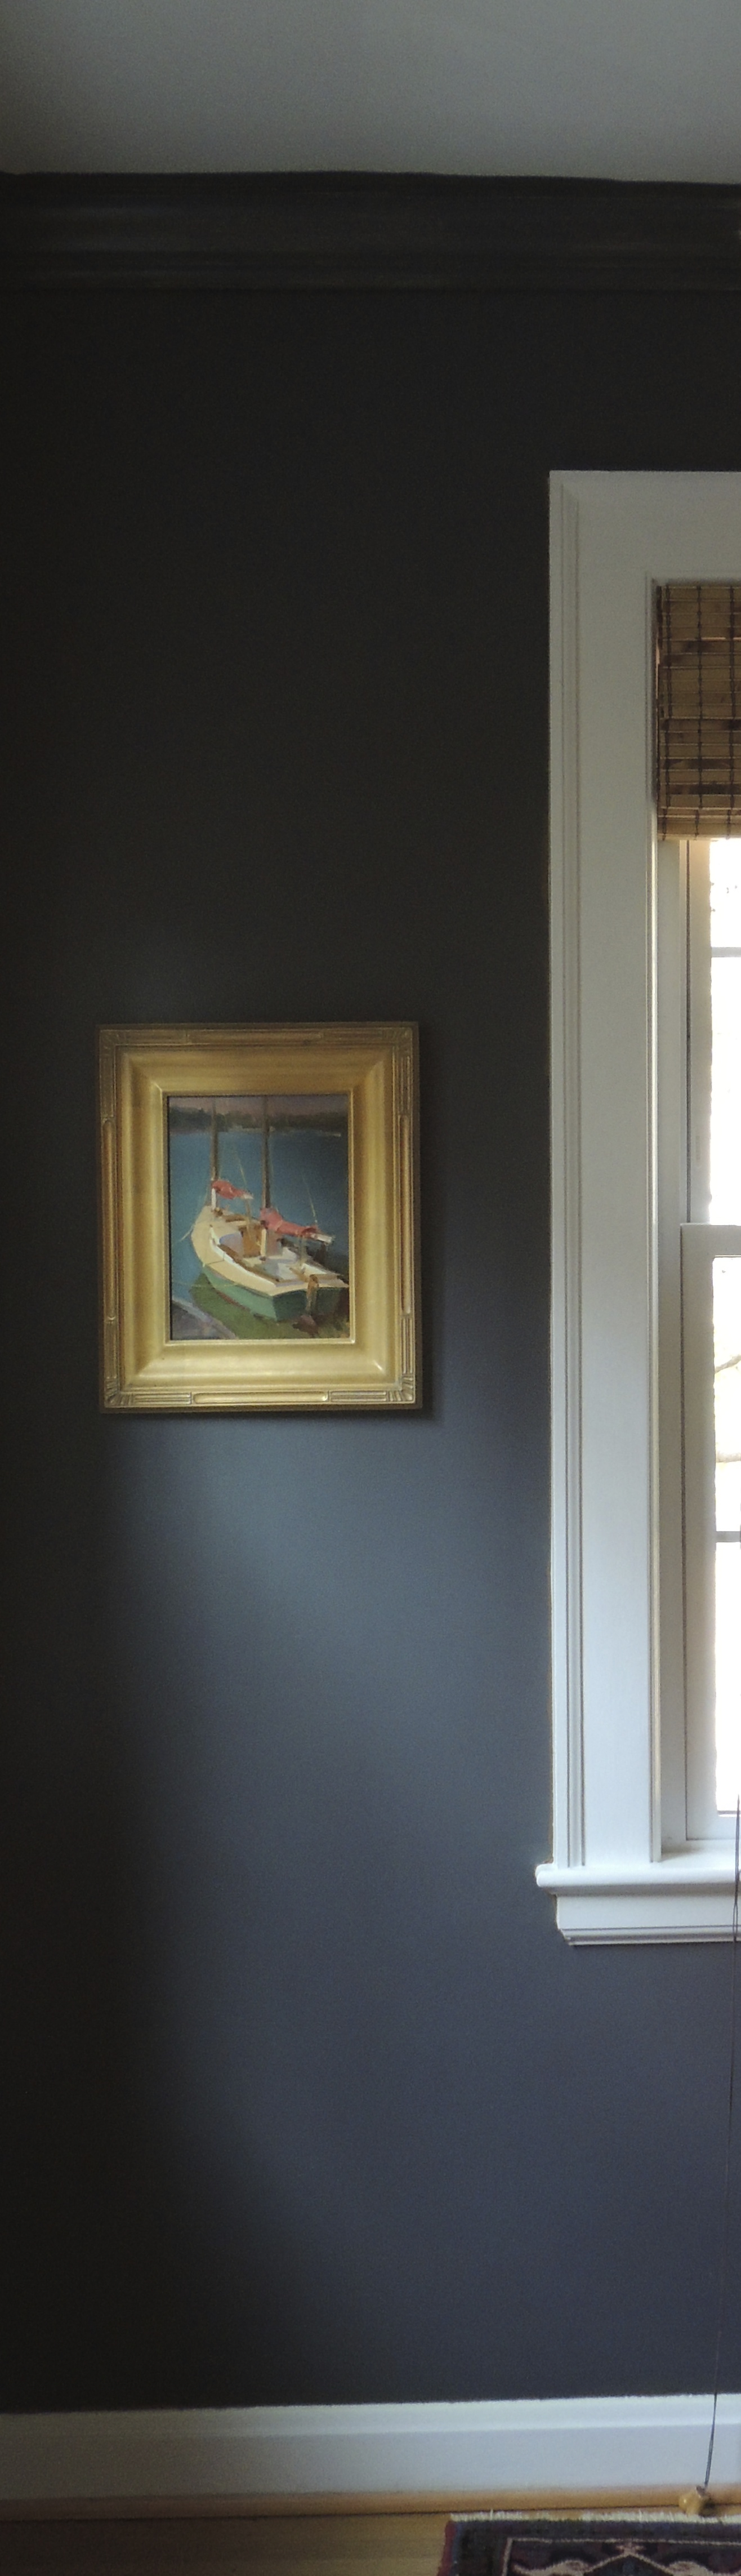 Paint Color For A Bright Room Need Your Help Artfoodhomecom